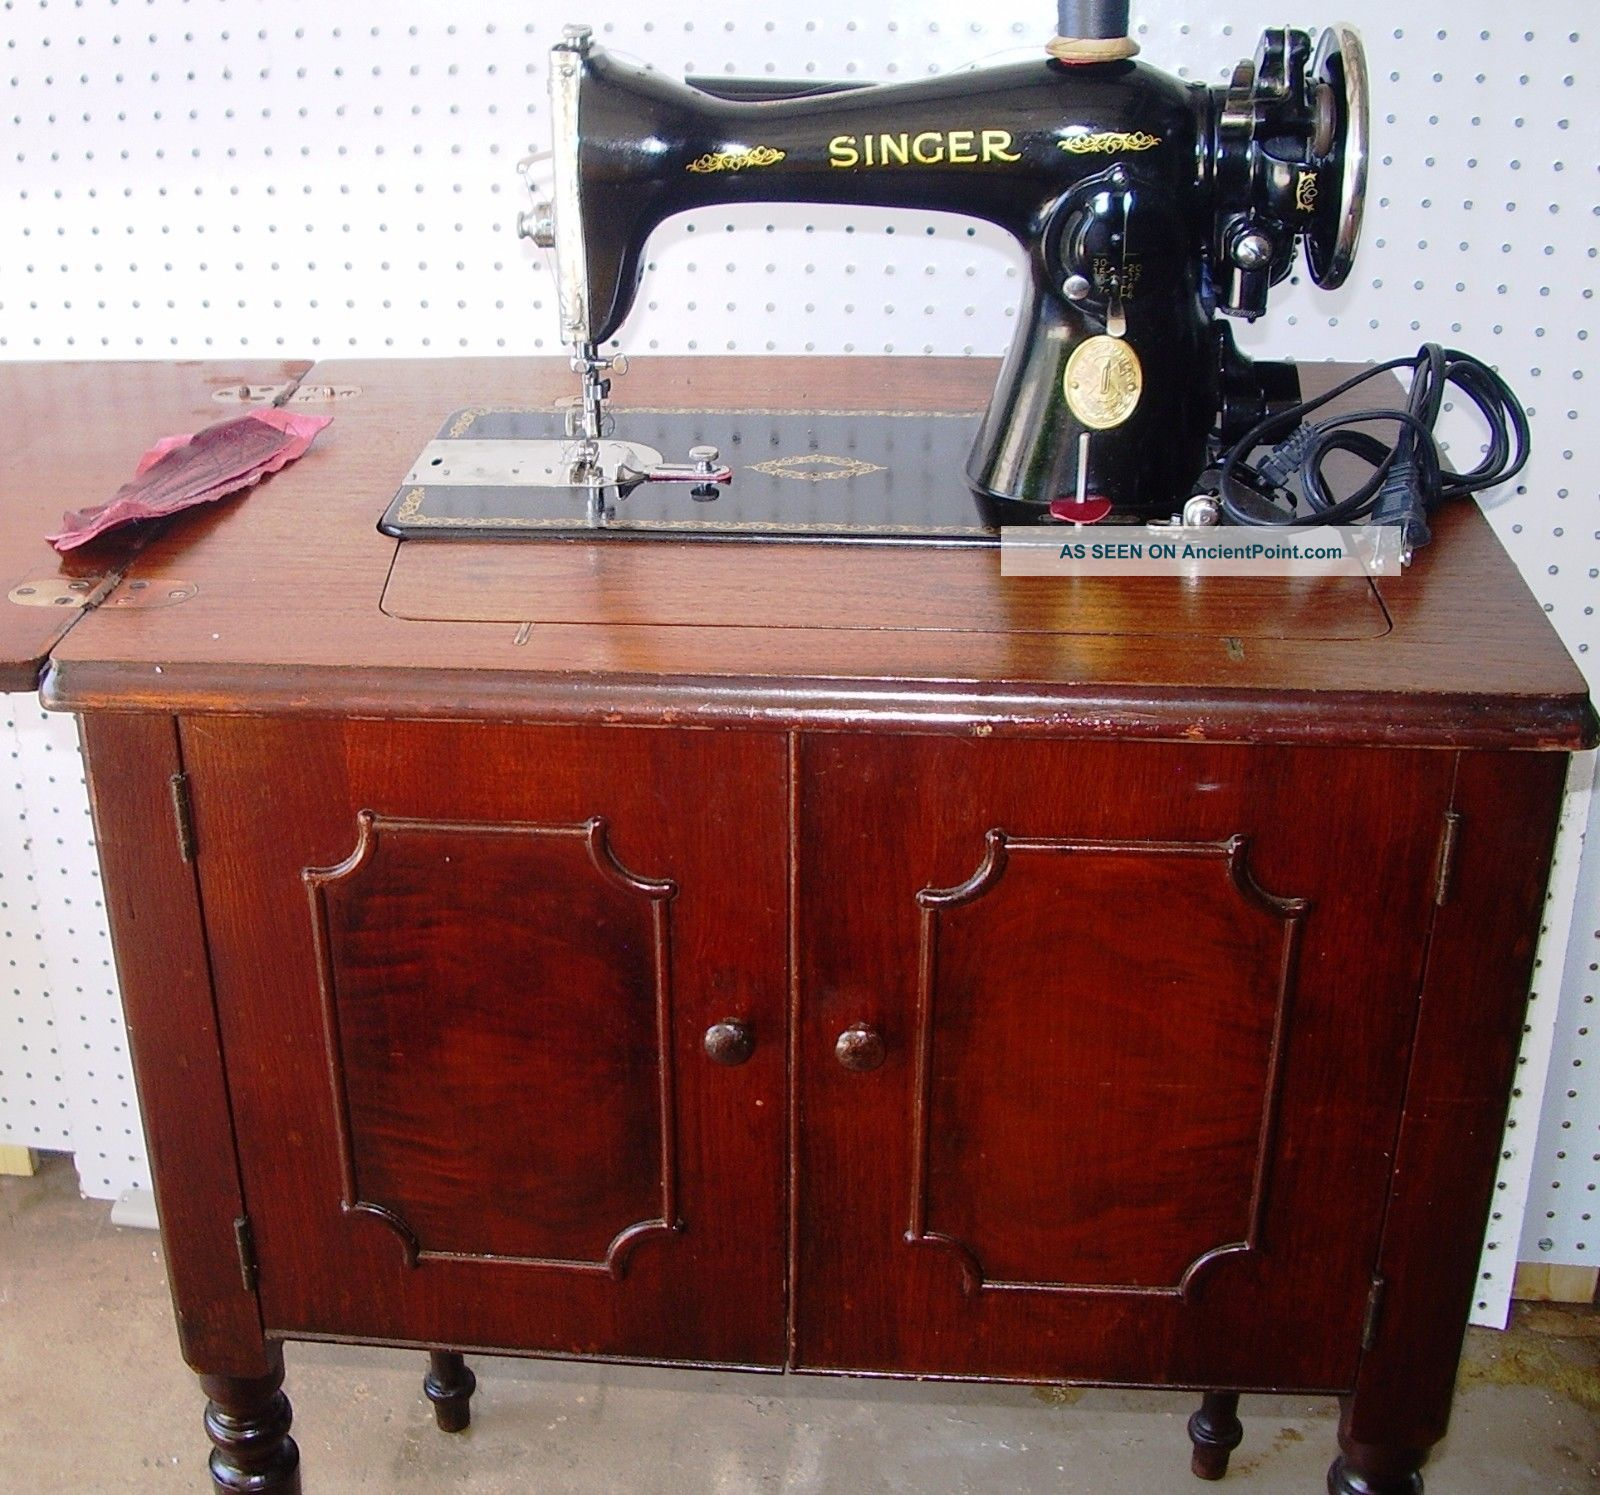 Singer 15 - 91 Direct Drive Sewing Machine,  Egyptian Scroll,  47walnut Cabinet,  1935 Sewing Machines photo